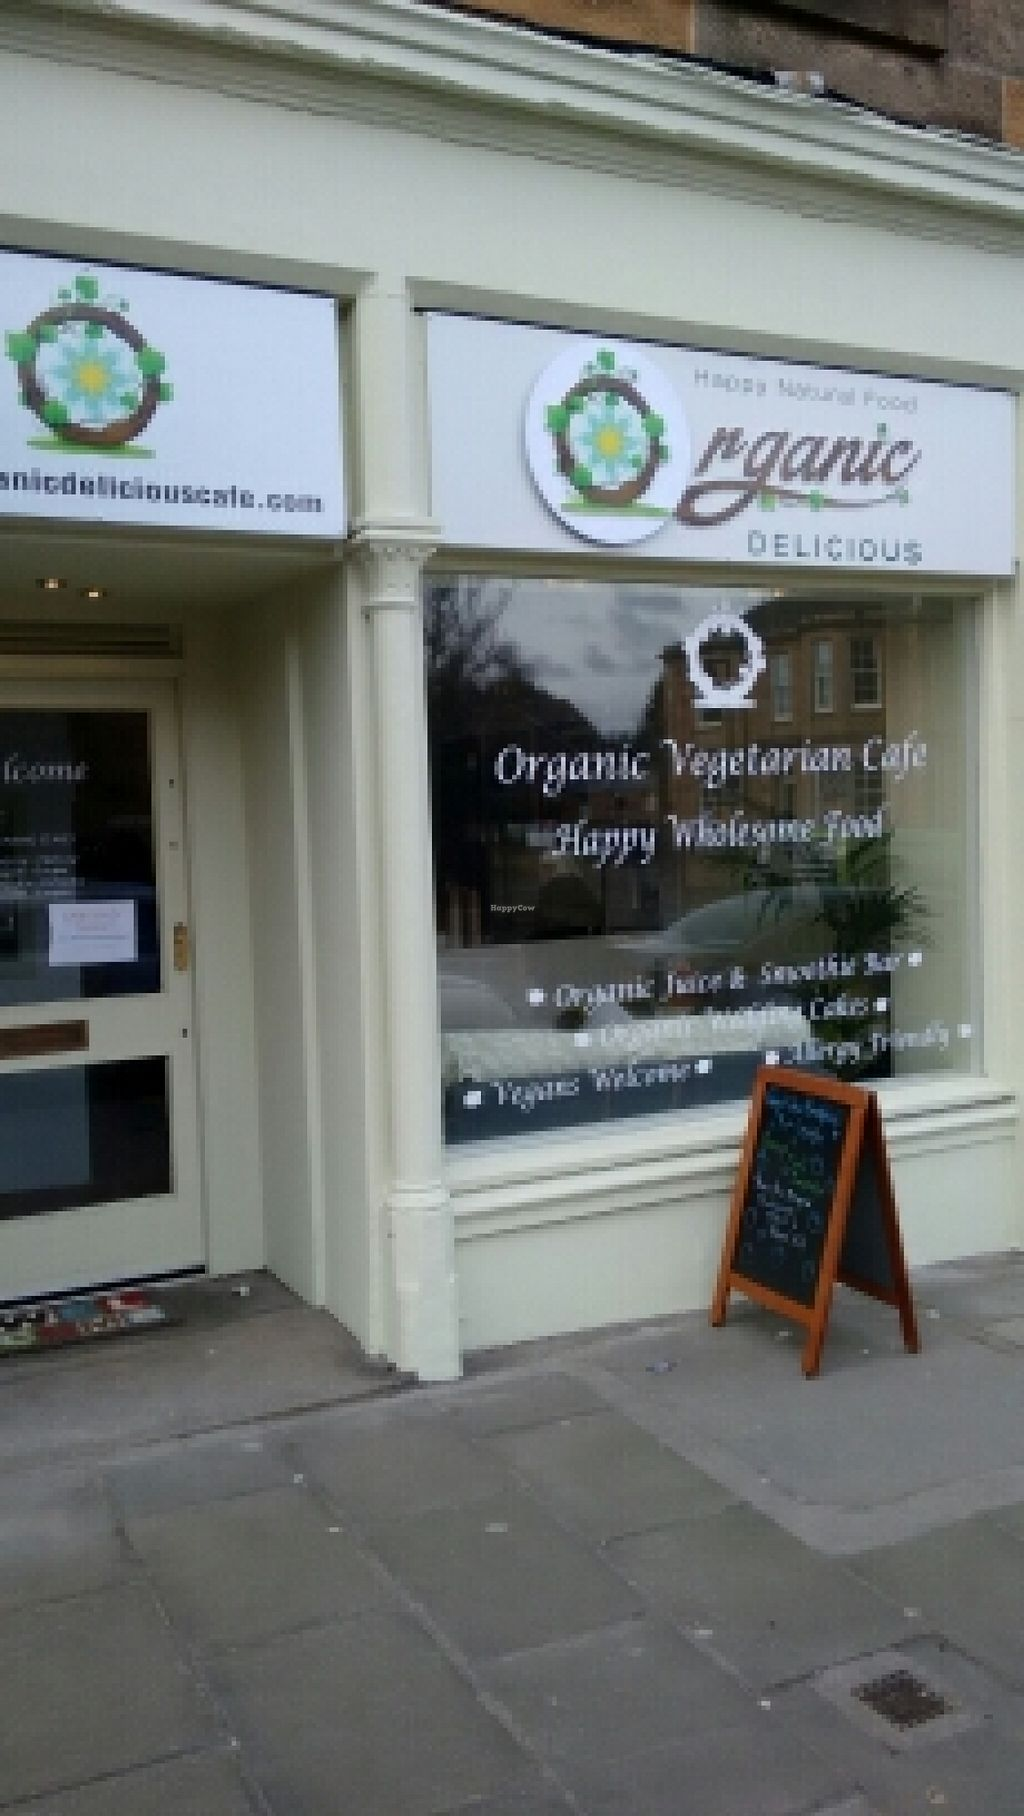 "Photo of CLOSED: Organic Delicious Cafe  by <a href=""/members/profile/craigmc"">craigmc</a> <br/>outside <br/> April 6, 2016  - <a href='/contact/abuse/image/67773/143032'>Report</a>"